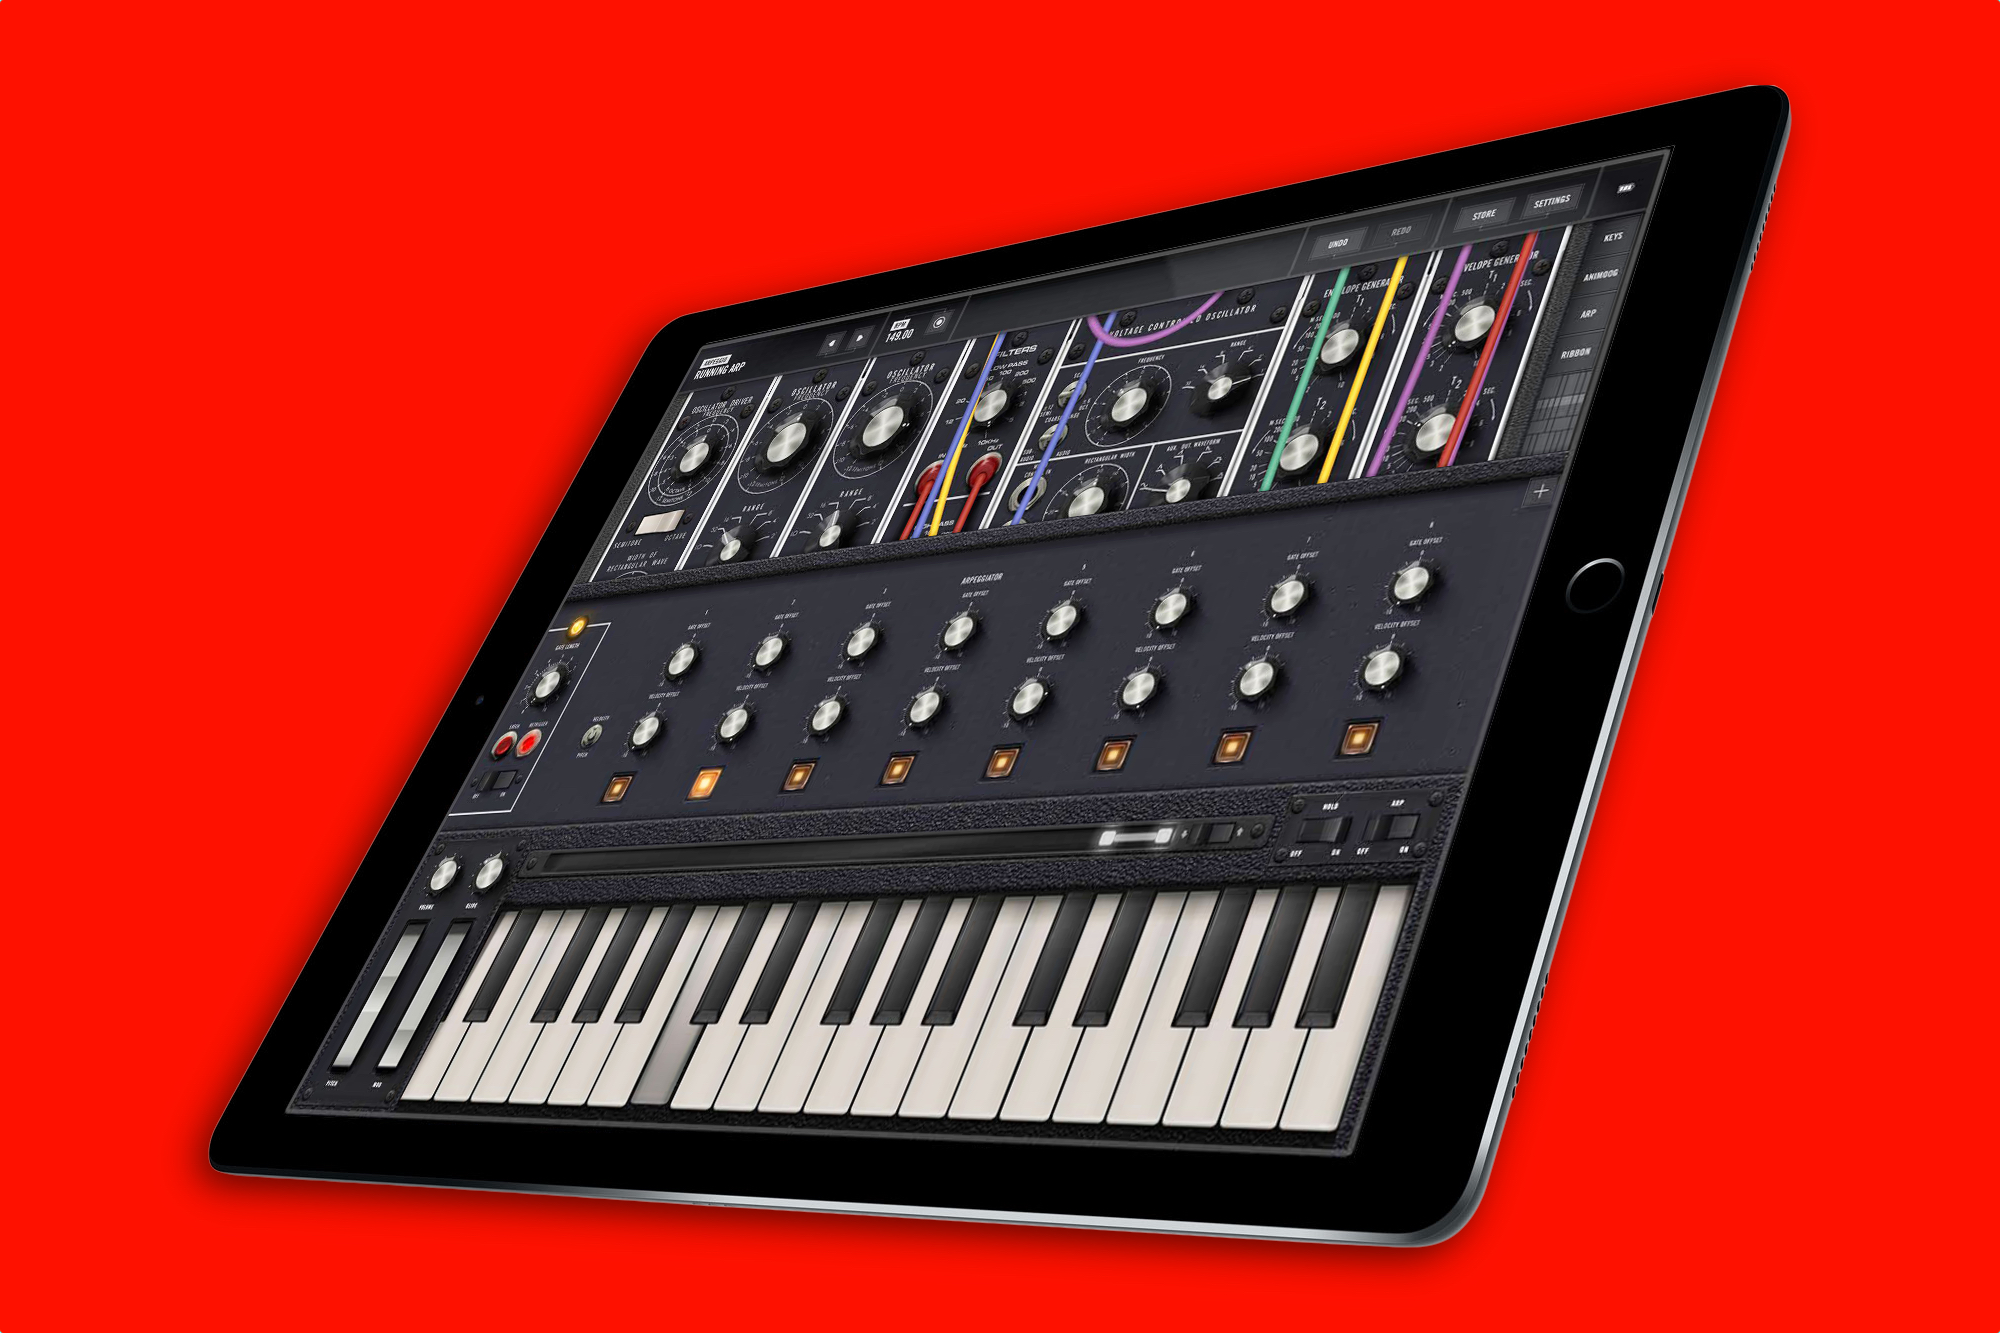 How To Make Music On Your Ipad The Best Synths Samplers And More